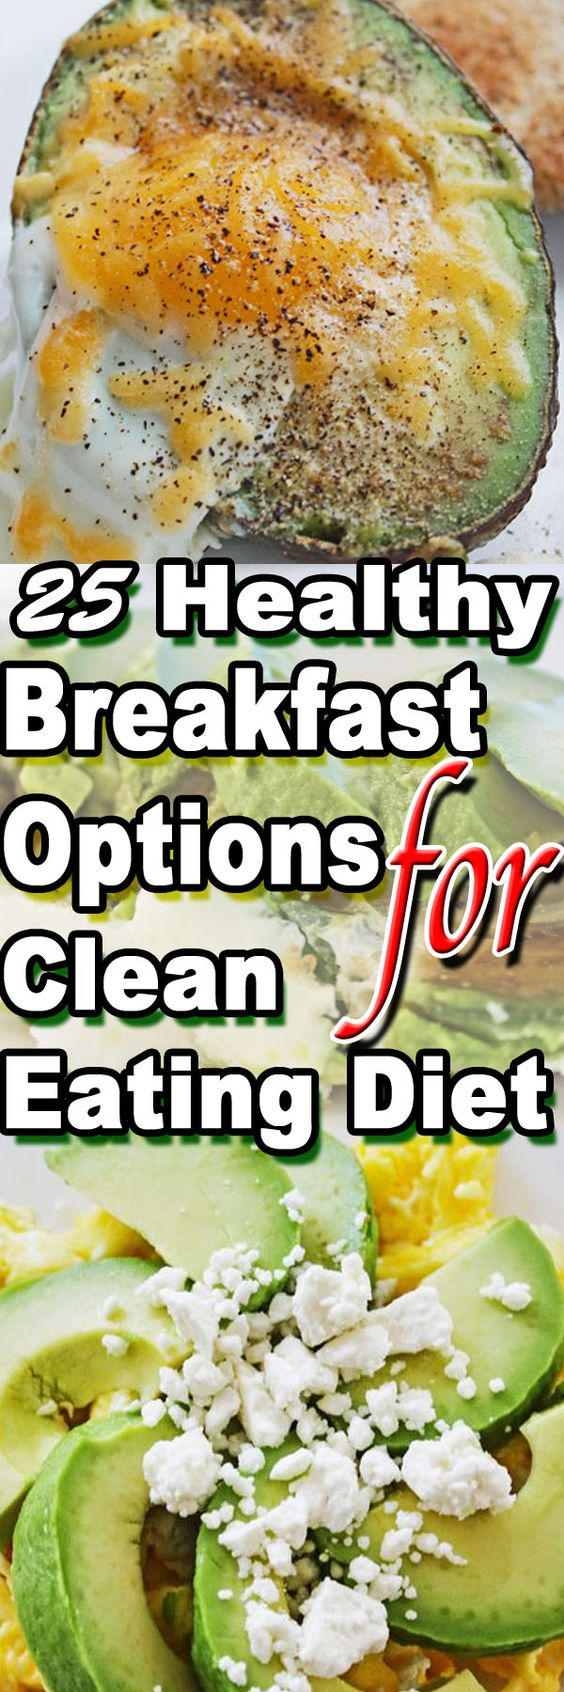 25 easy healthy breakfast options for clean eating diet! http://www.orchidfashionboutique.co.uk